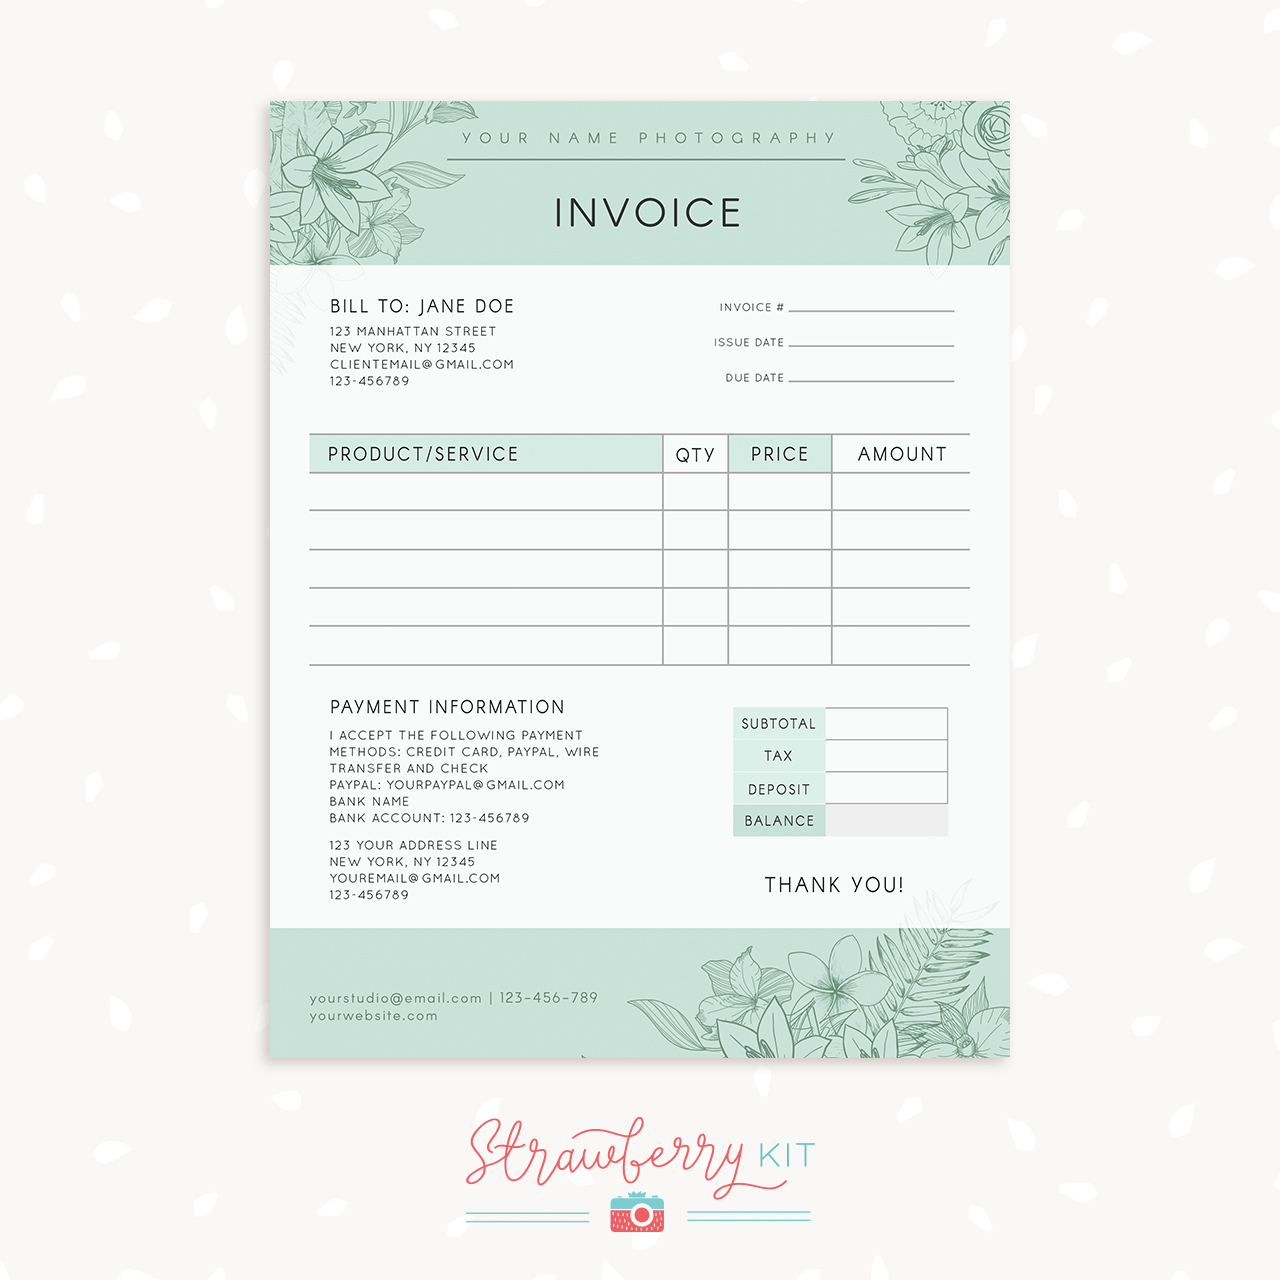 Floral Photography Invoice Template Strawberry Kit - Photography invoice template